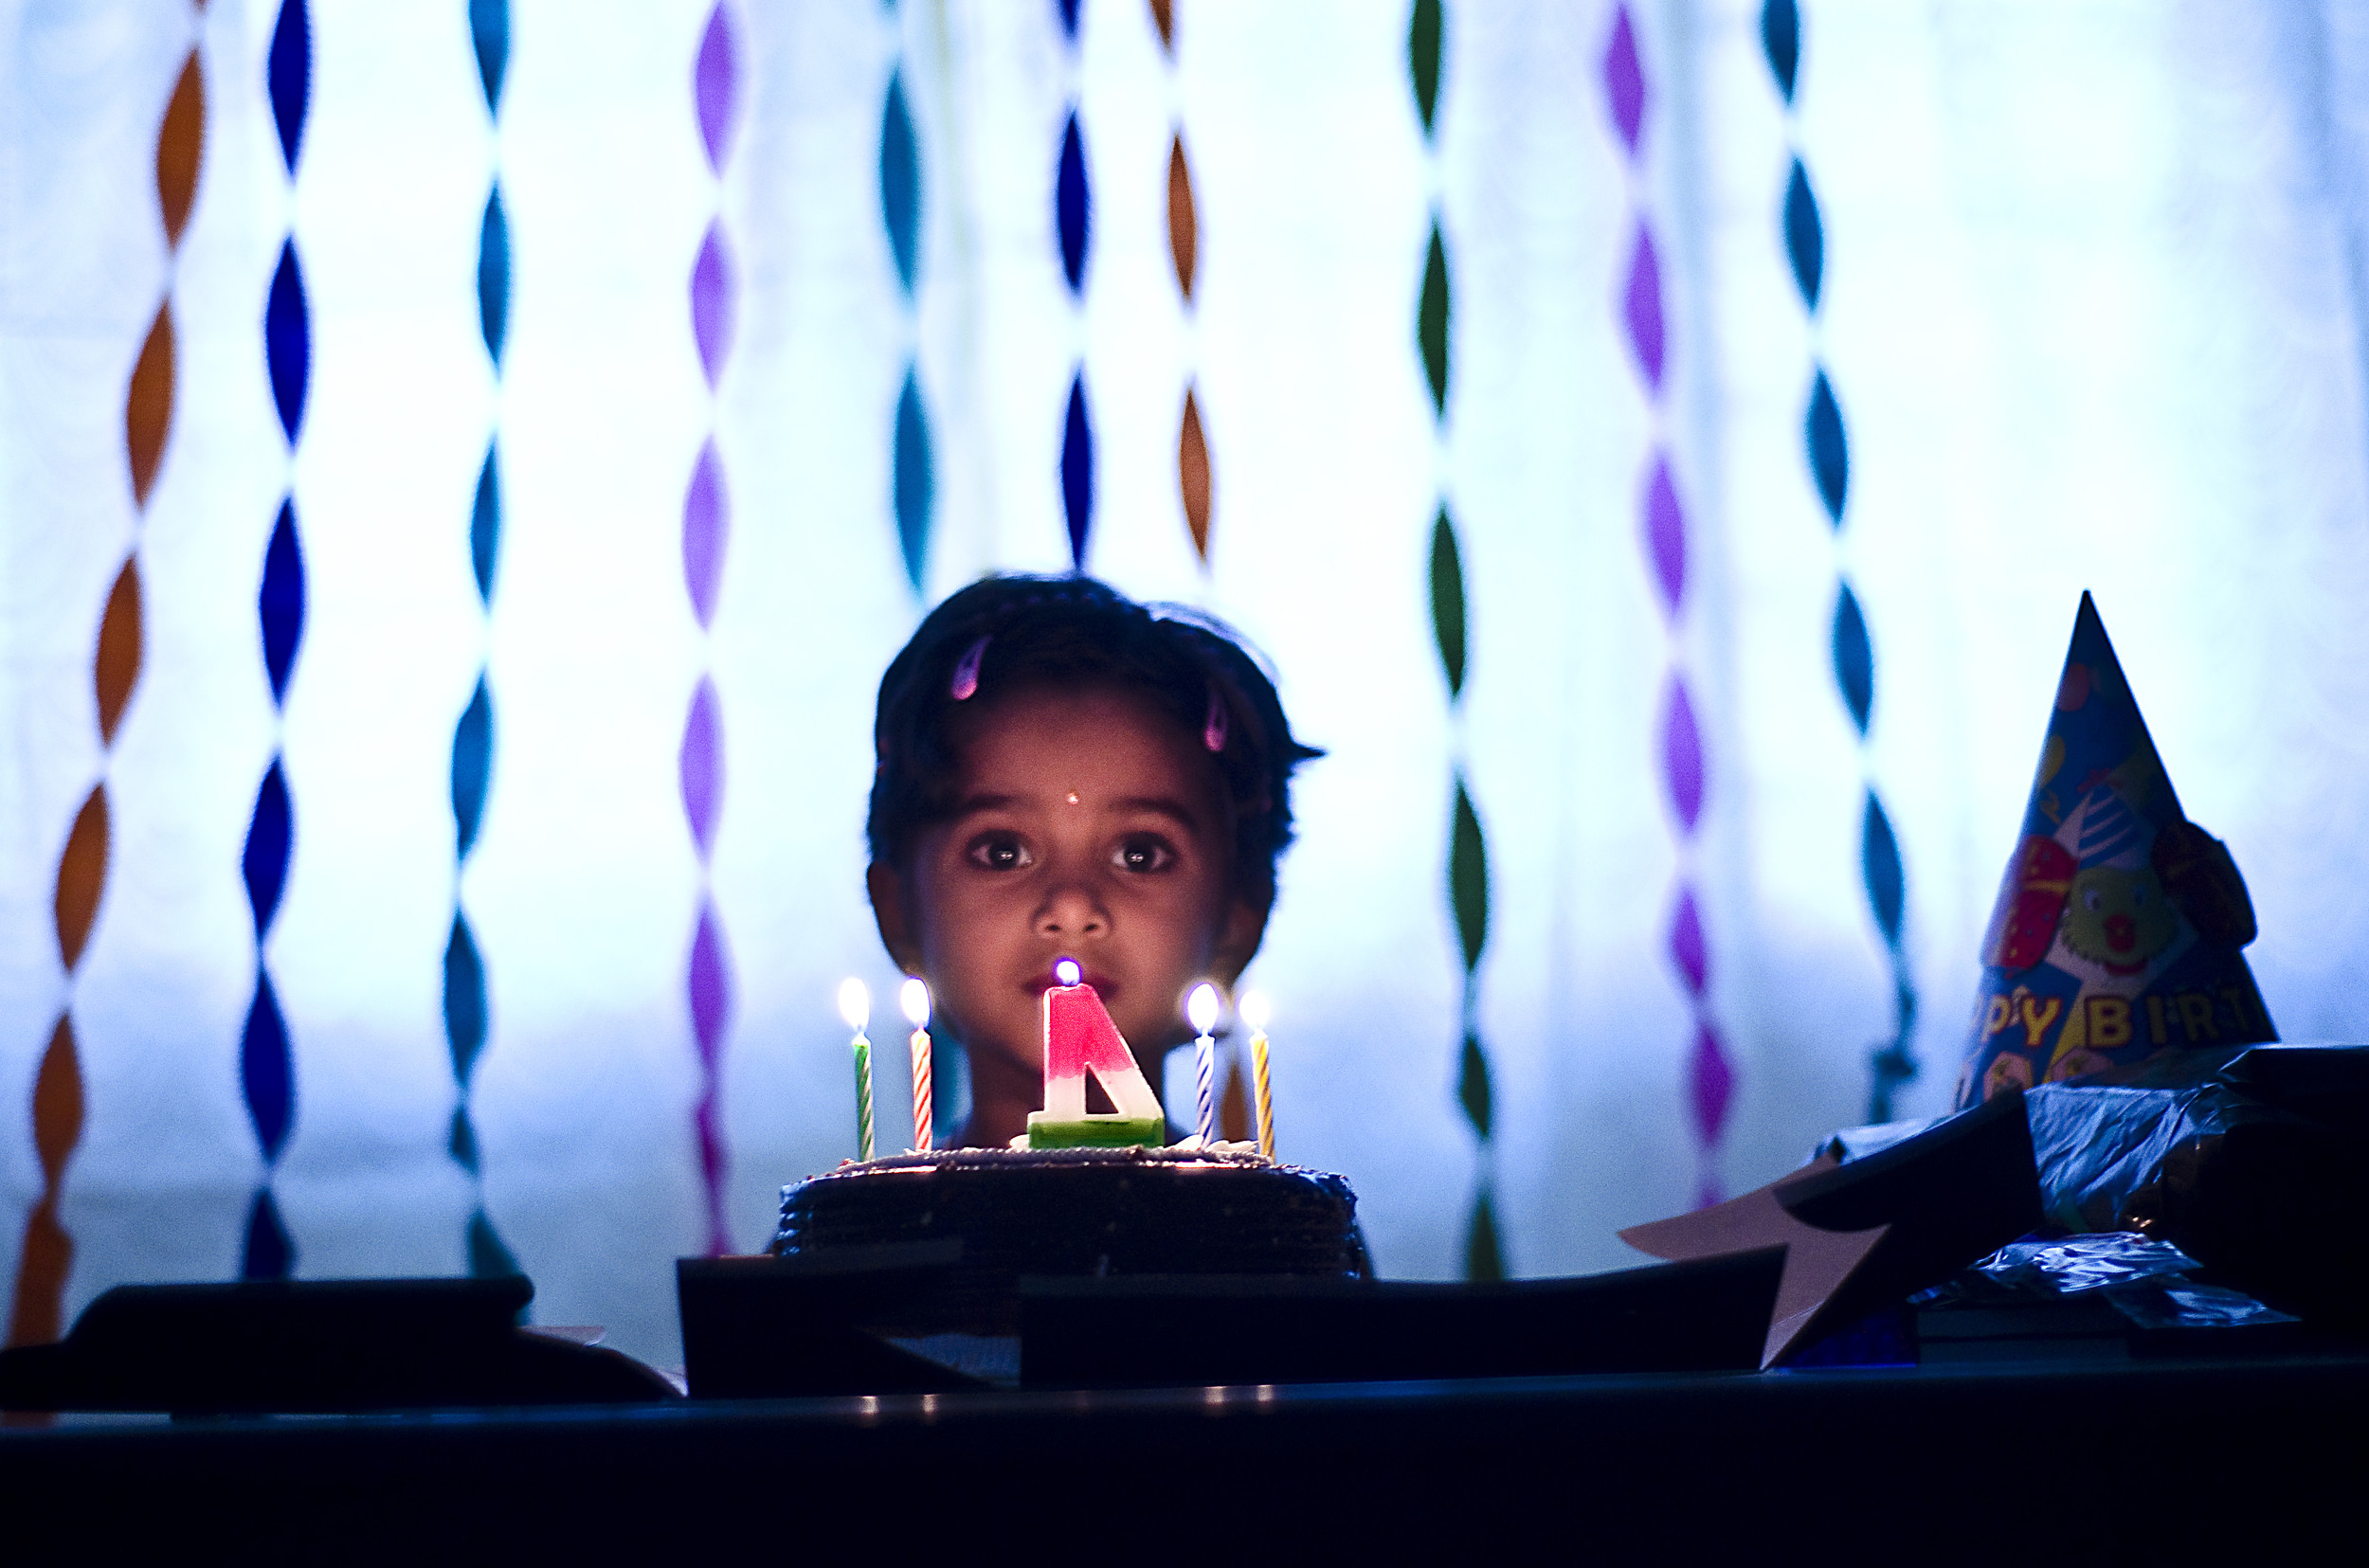 How to celebrate a child's birthday without breaking the bank